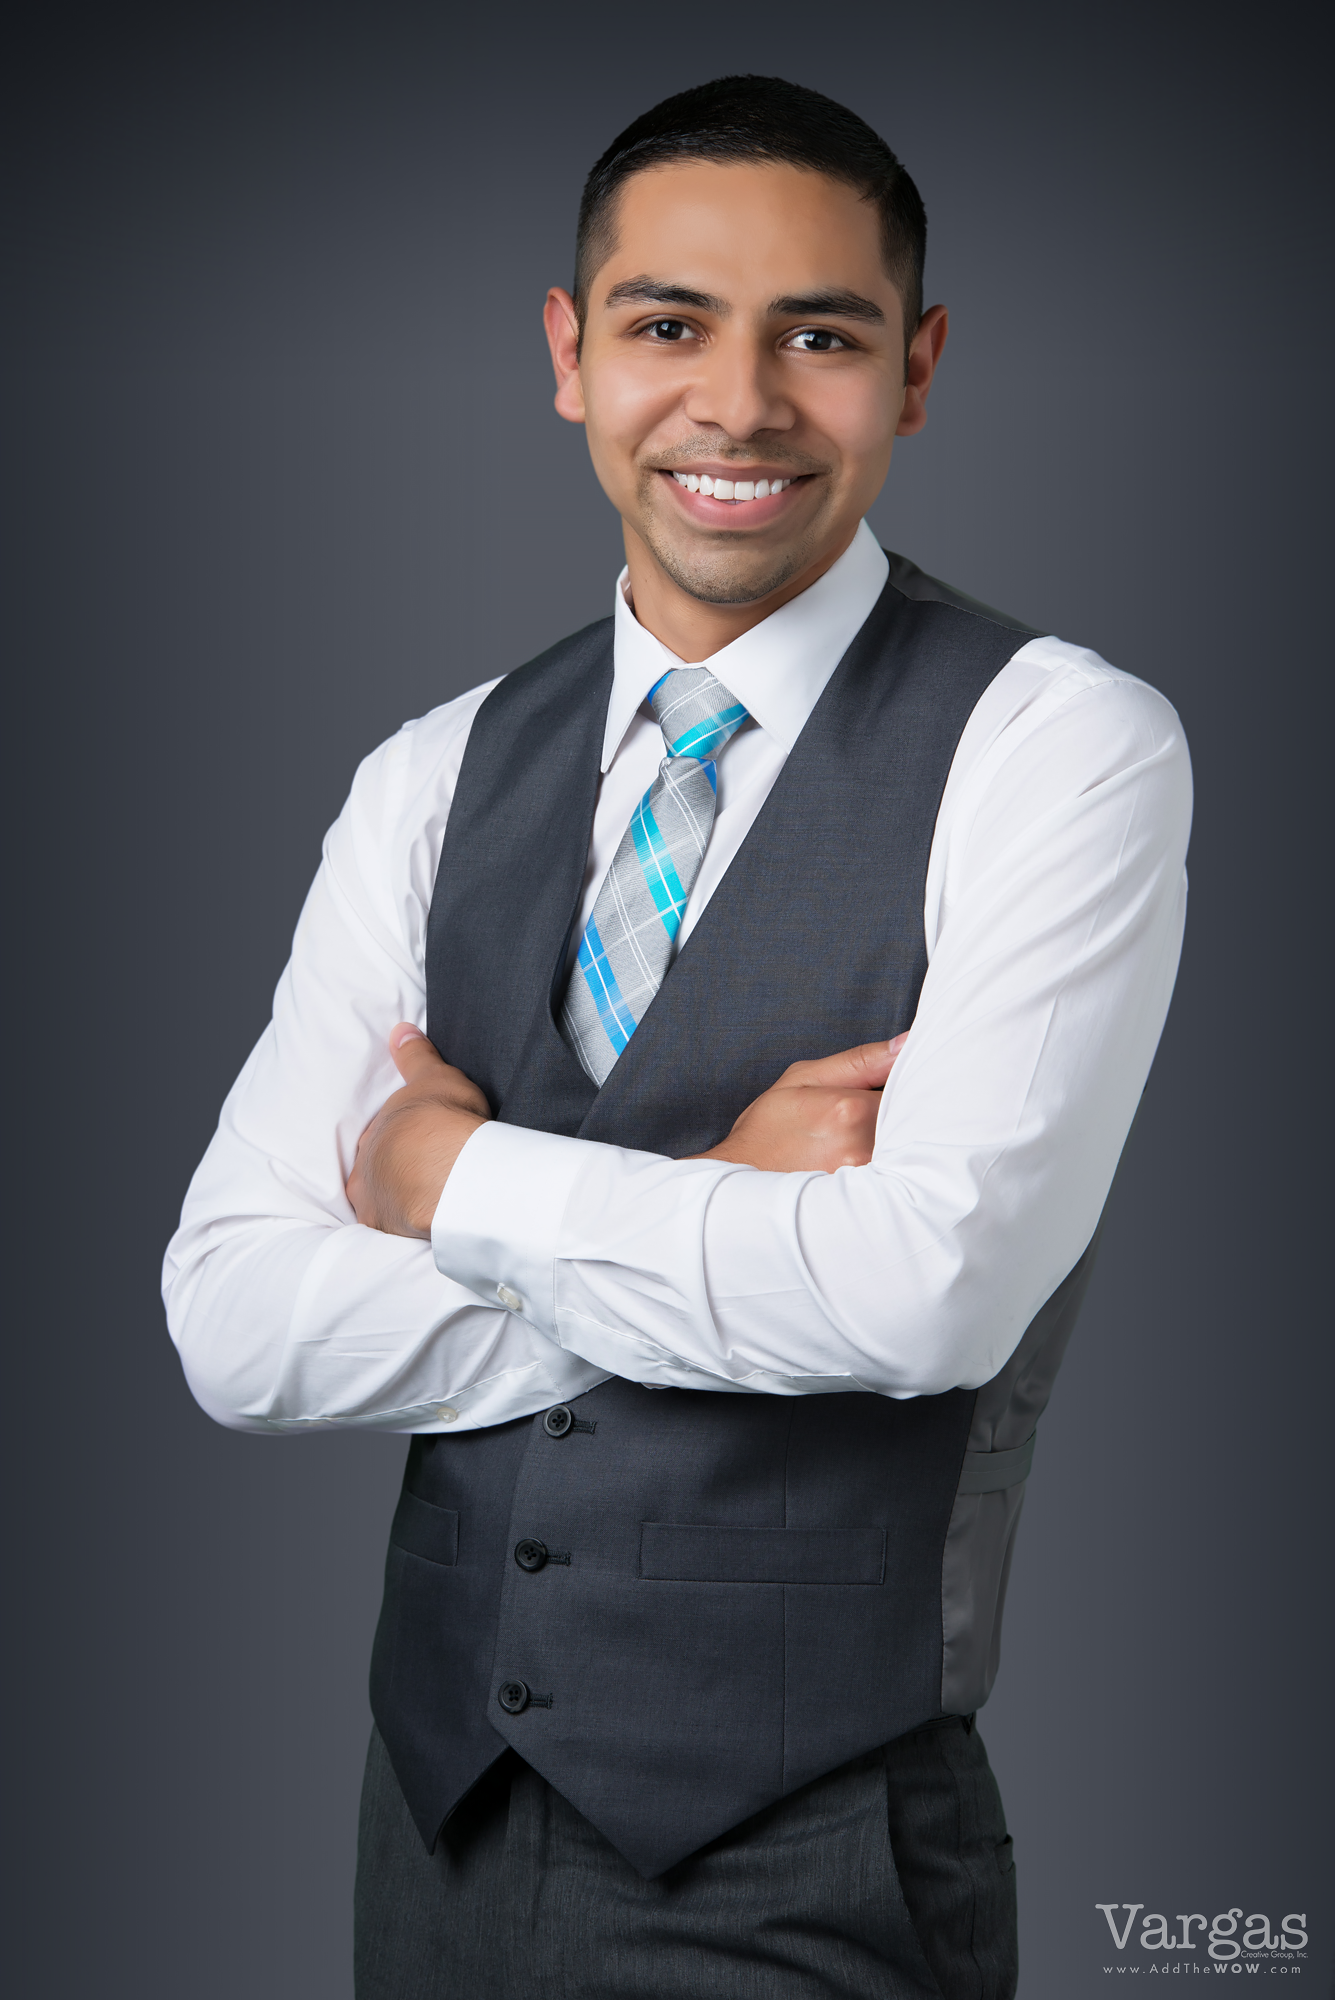 Gomez_Victor-Realtor-Moreno-Valley-Business-Portrait-Head-Shot.png